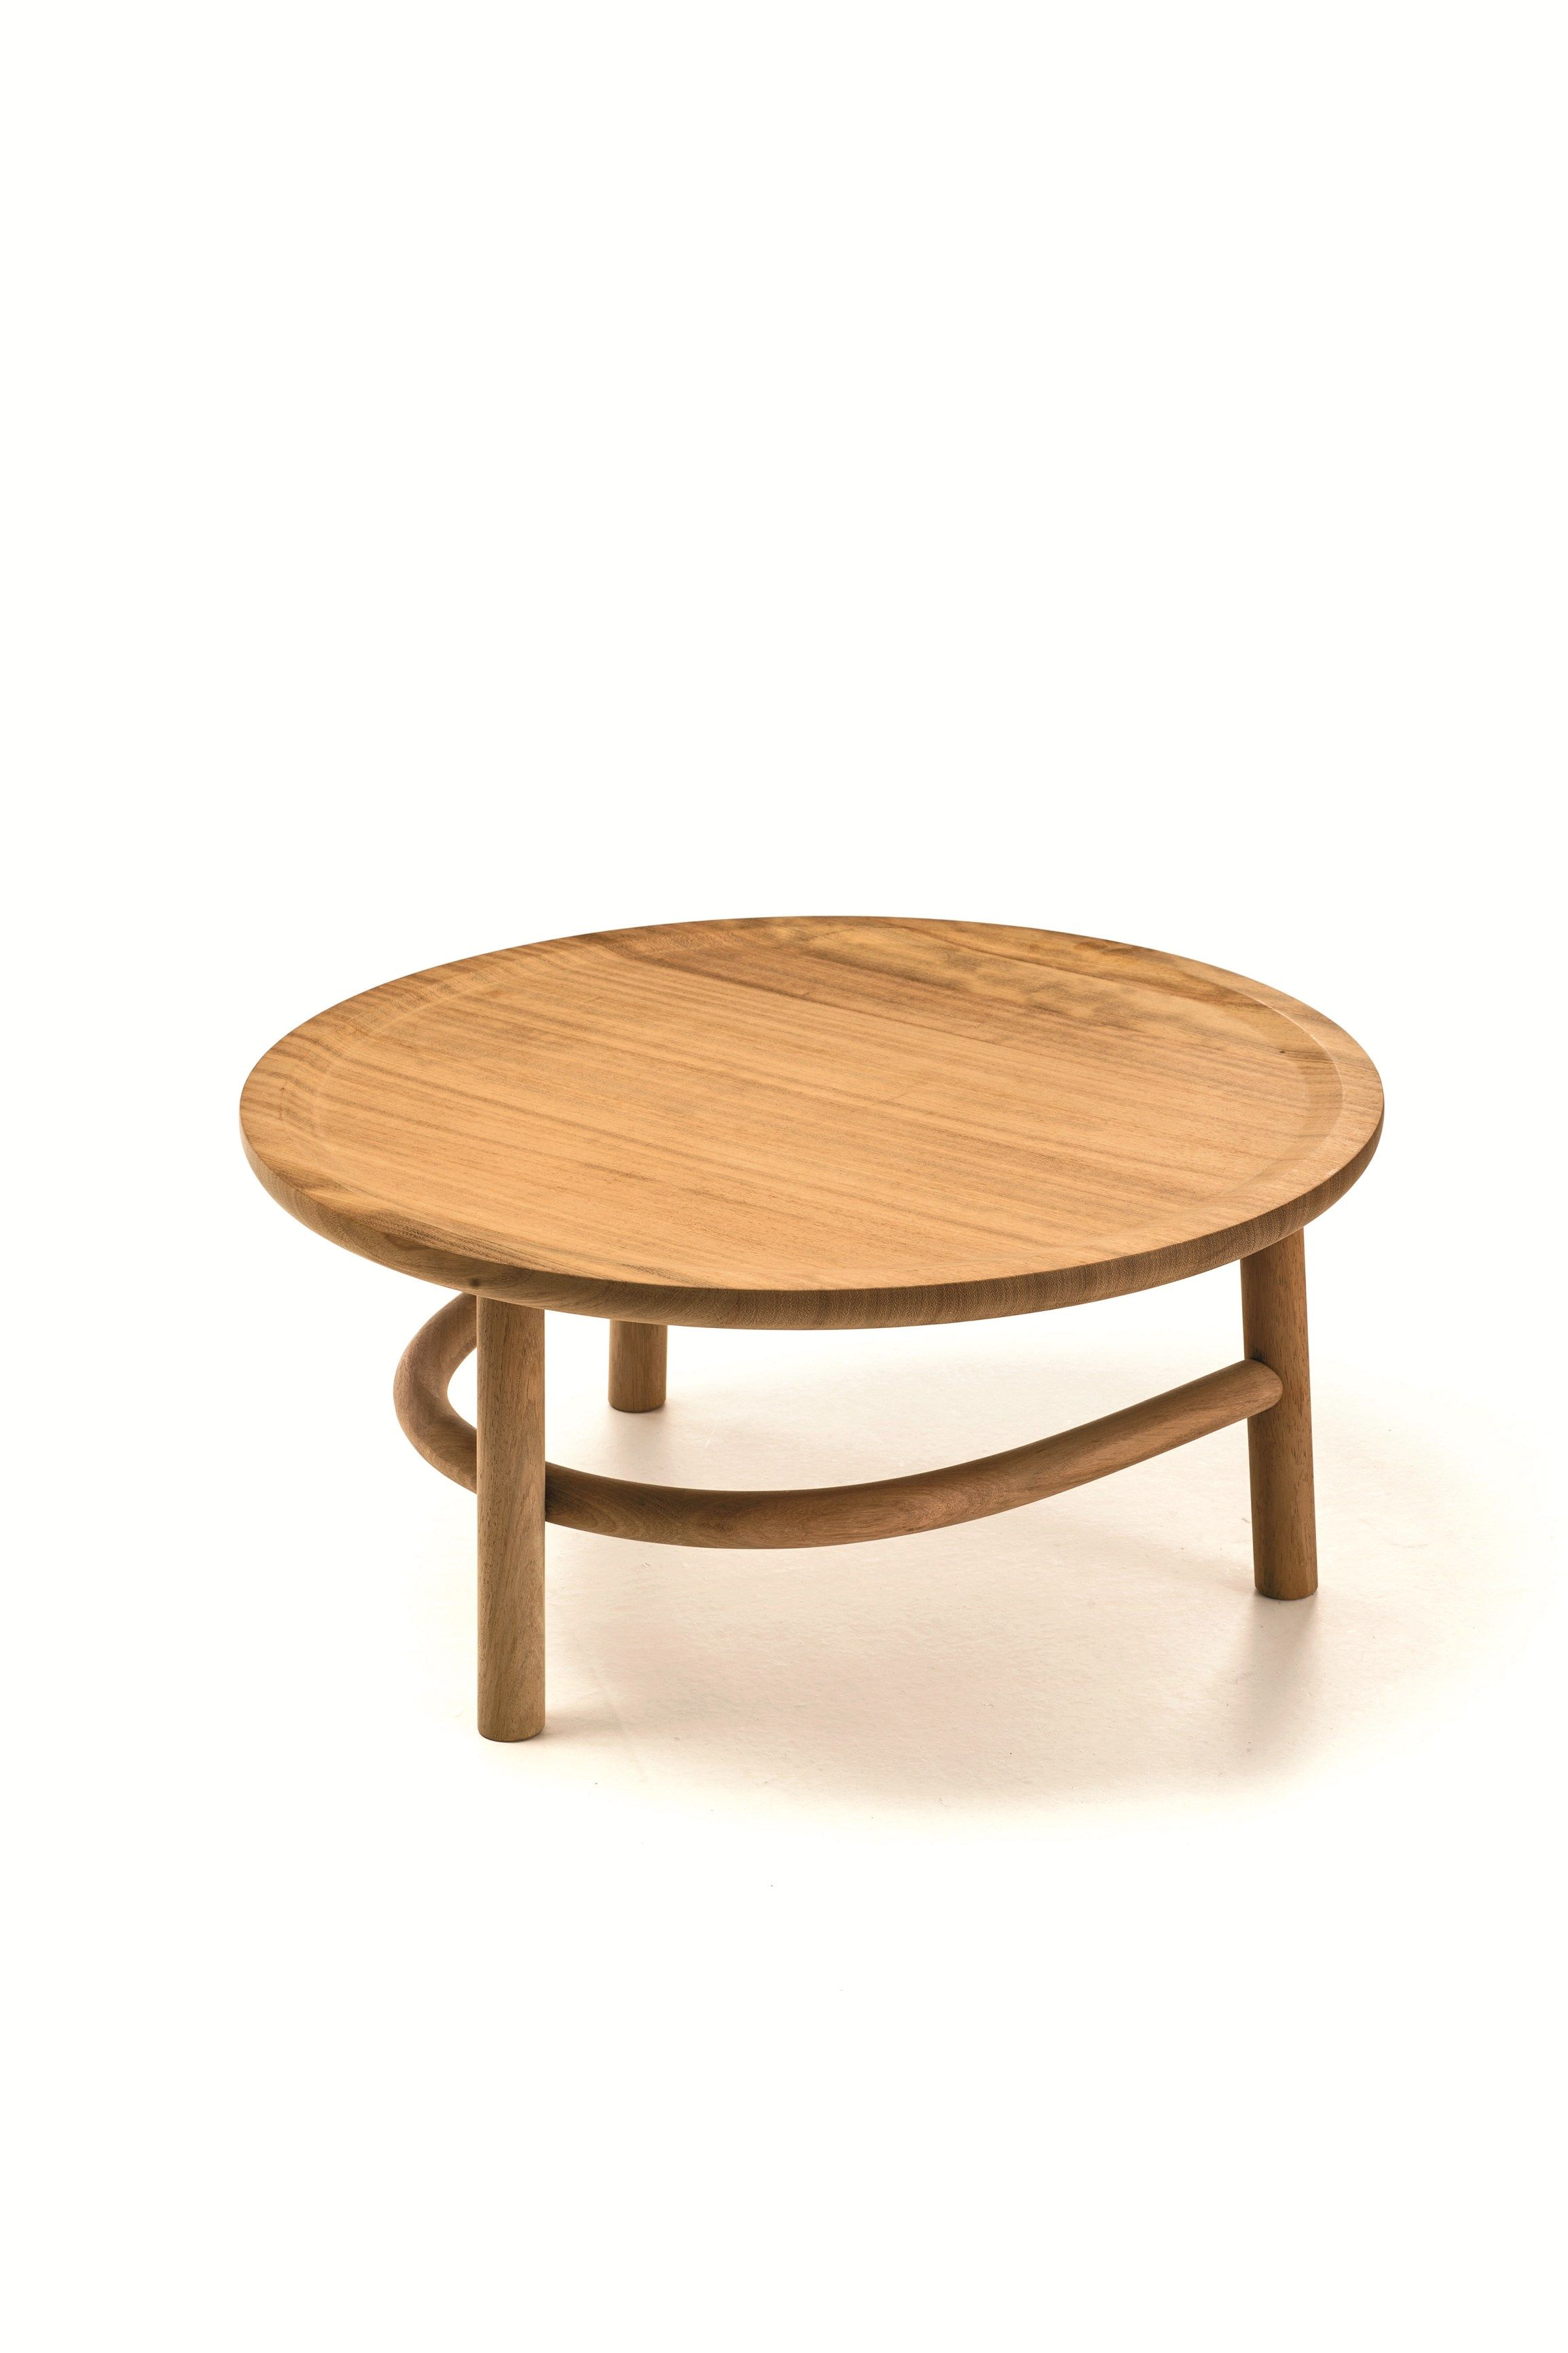 Unam Rocking Chair By Very Wood Design Sebastian Herkner Round Wooden Coffee Table Solid Coffee Table Table [ 3464 x 2309 Pixel ]